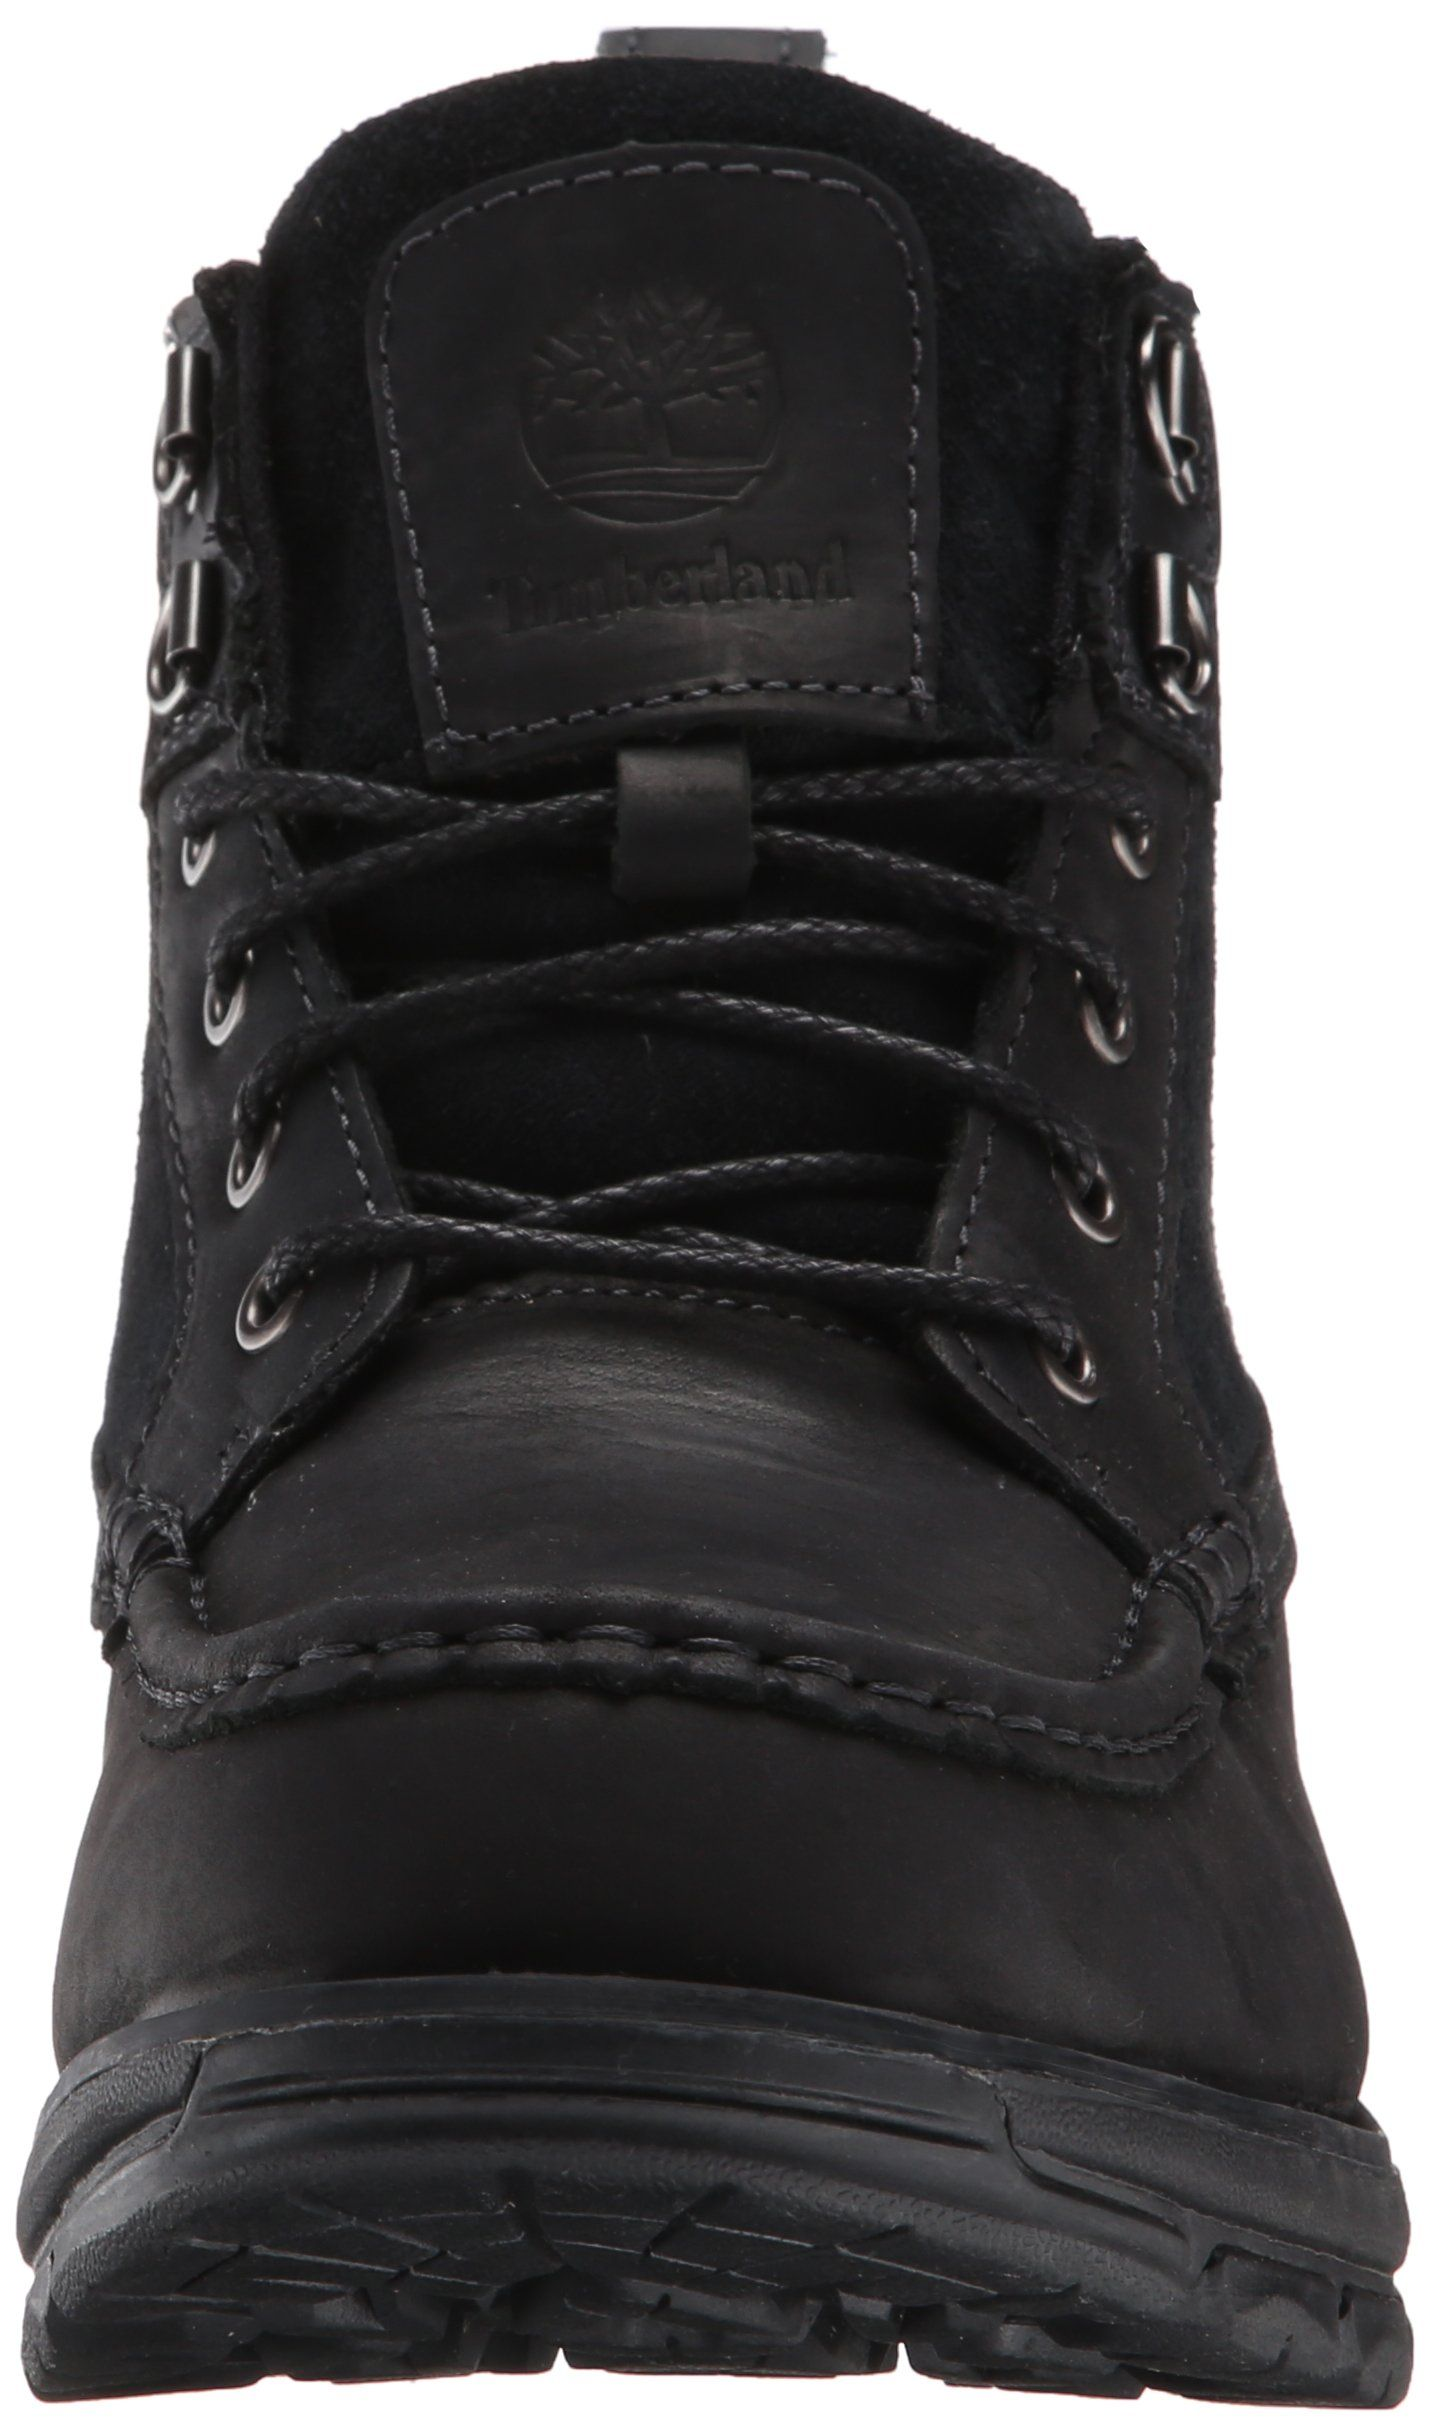 54c53a359c8e Timberland Mens Heston Mid Waterproof Boot Black 9 M US    Check out the  image by visiting the link. (This is an affiliate link)   TimberlandBootsforOutdoor